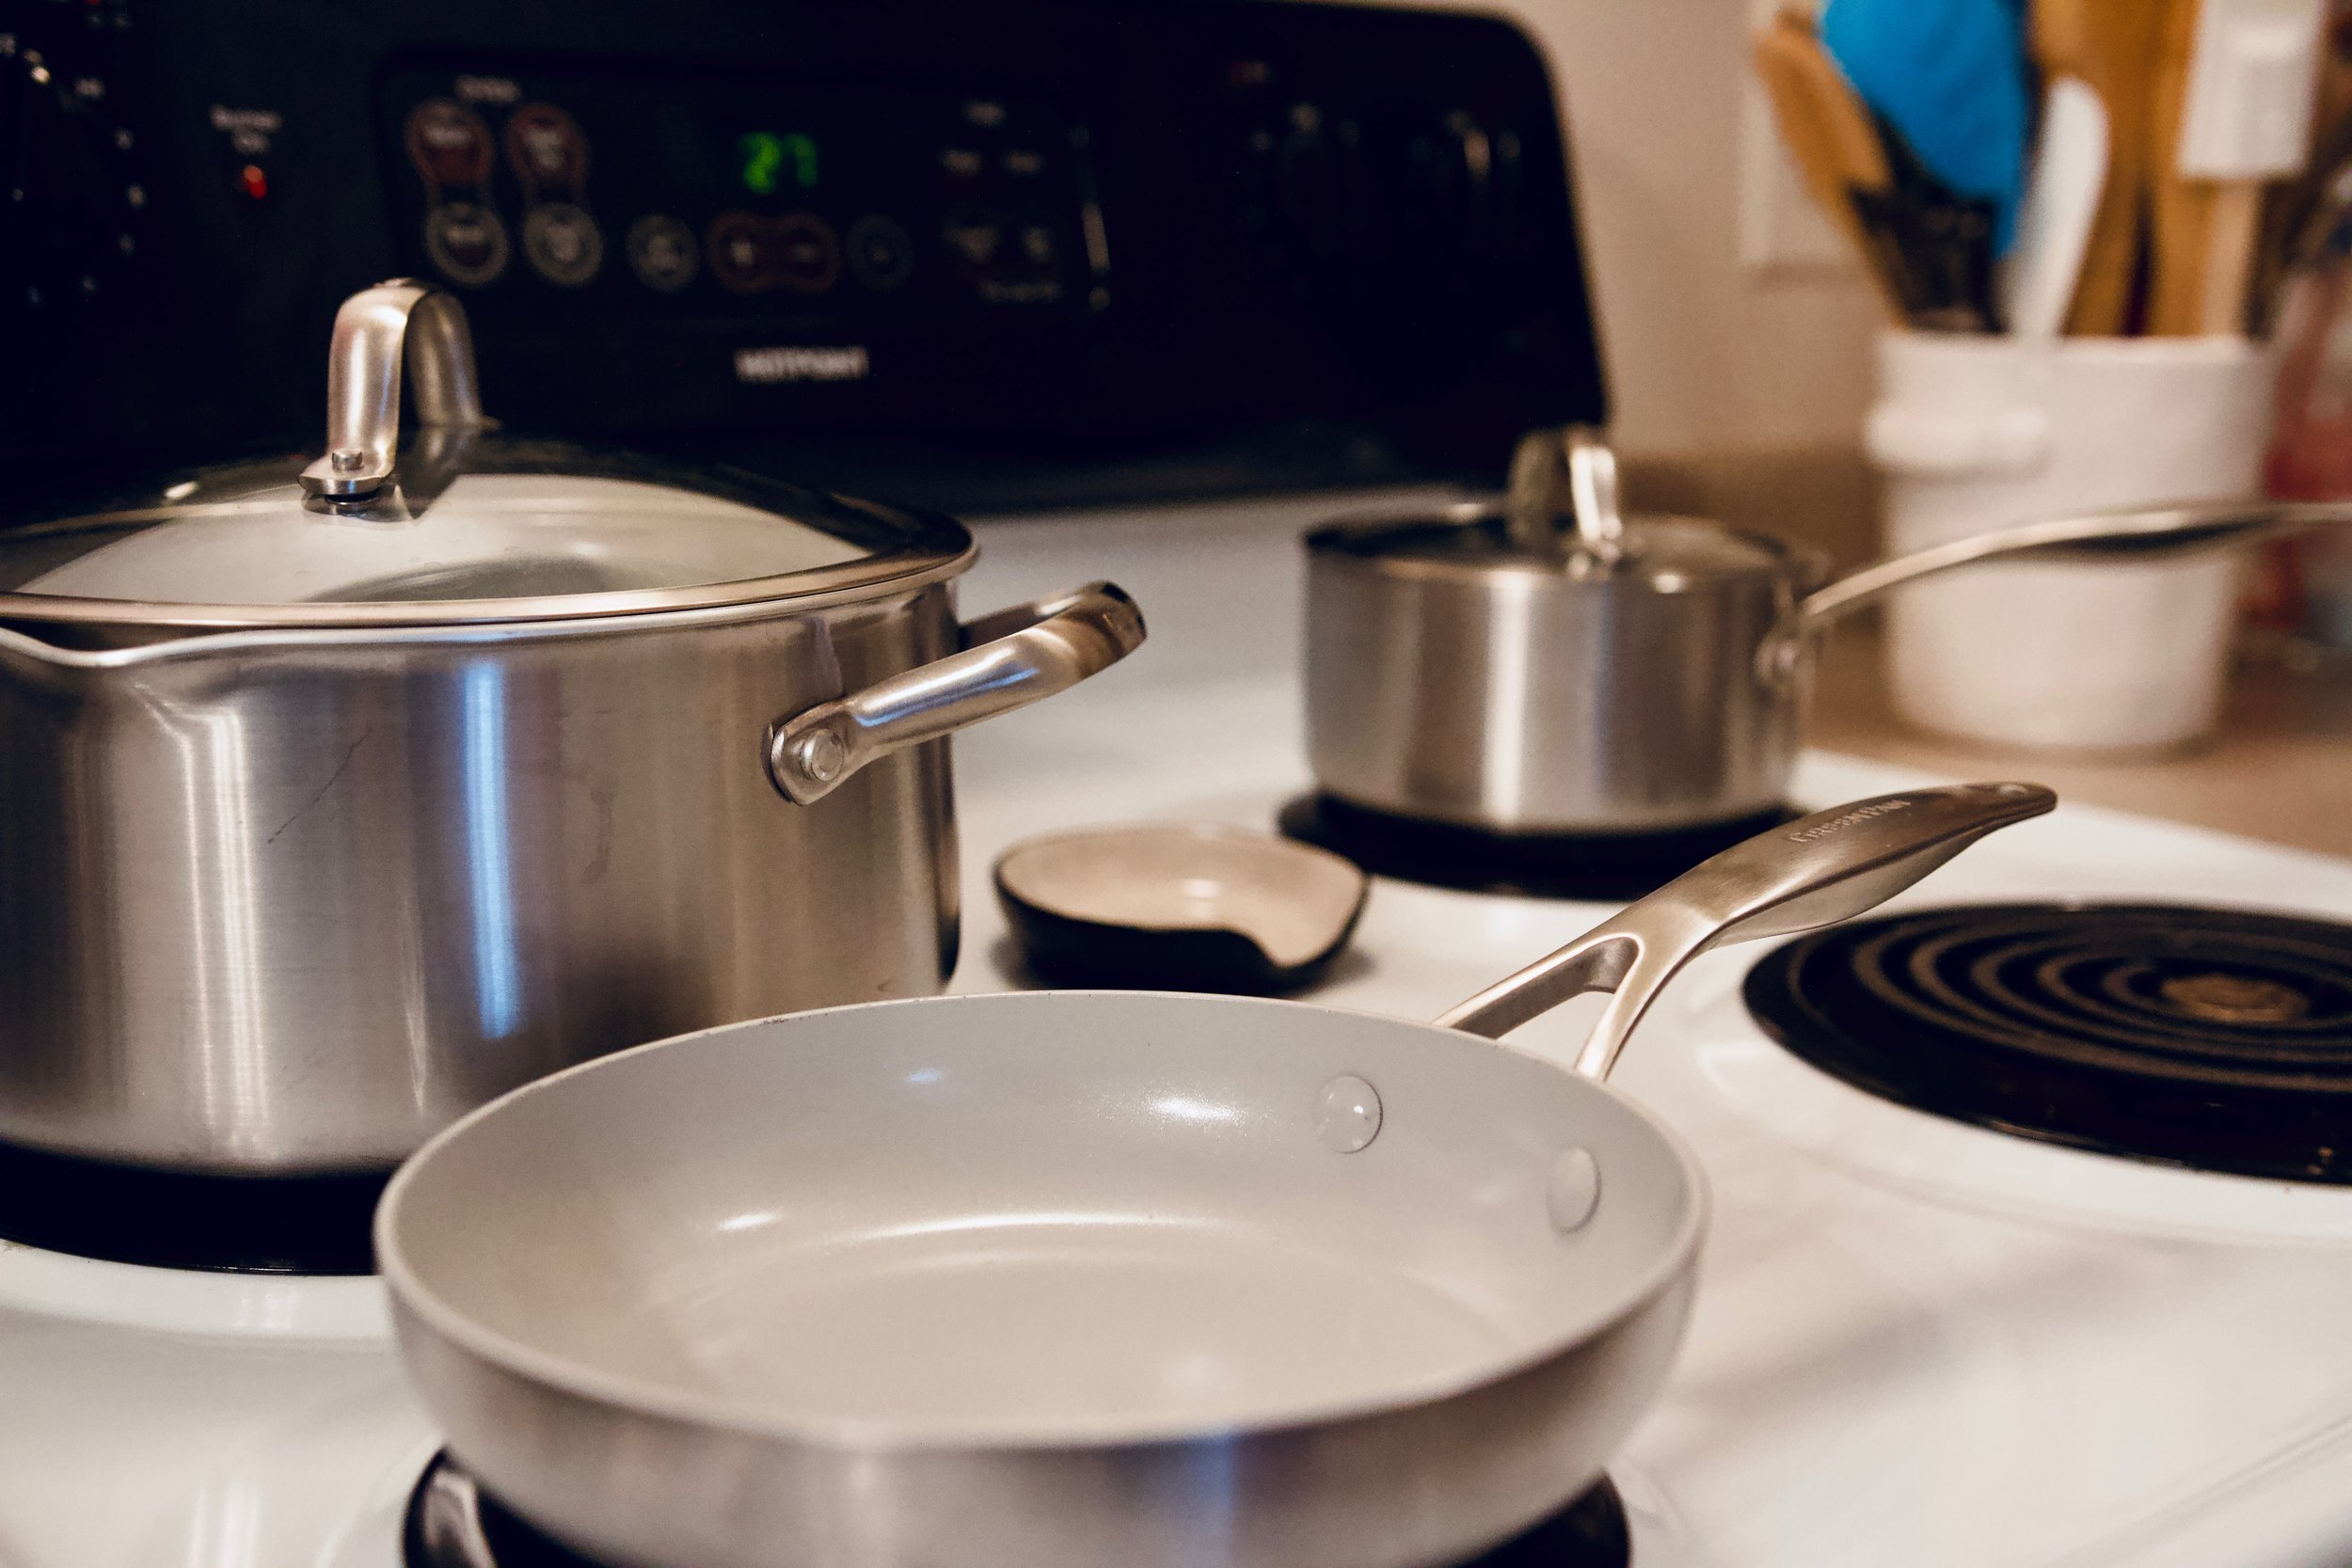 GreenPan ™ Venice Pro 10-Piece Cookware Set - These are the best pots and pans I have ever used. Nothing sticks to them which makes them so easy to clean.